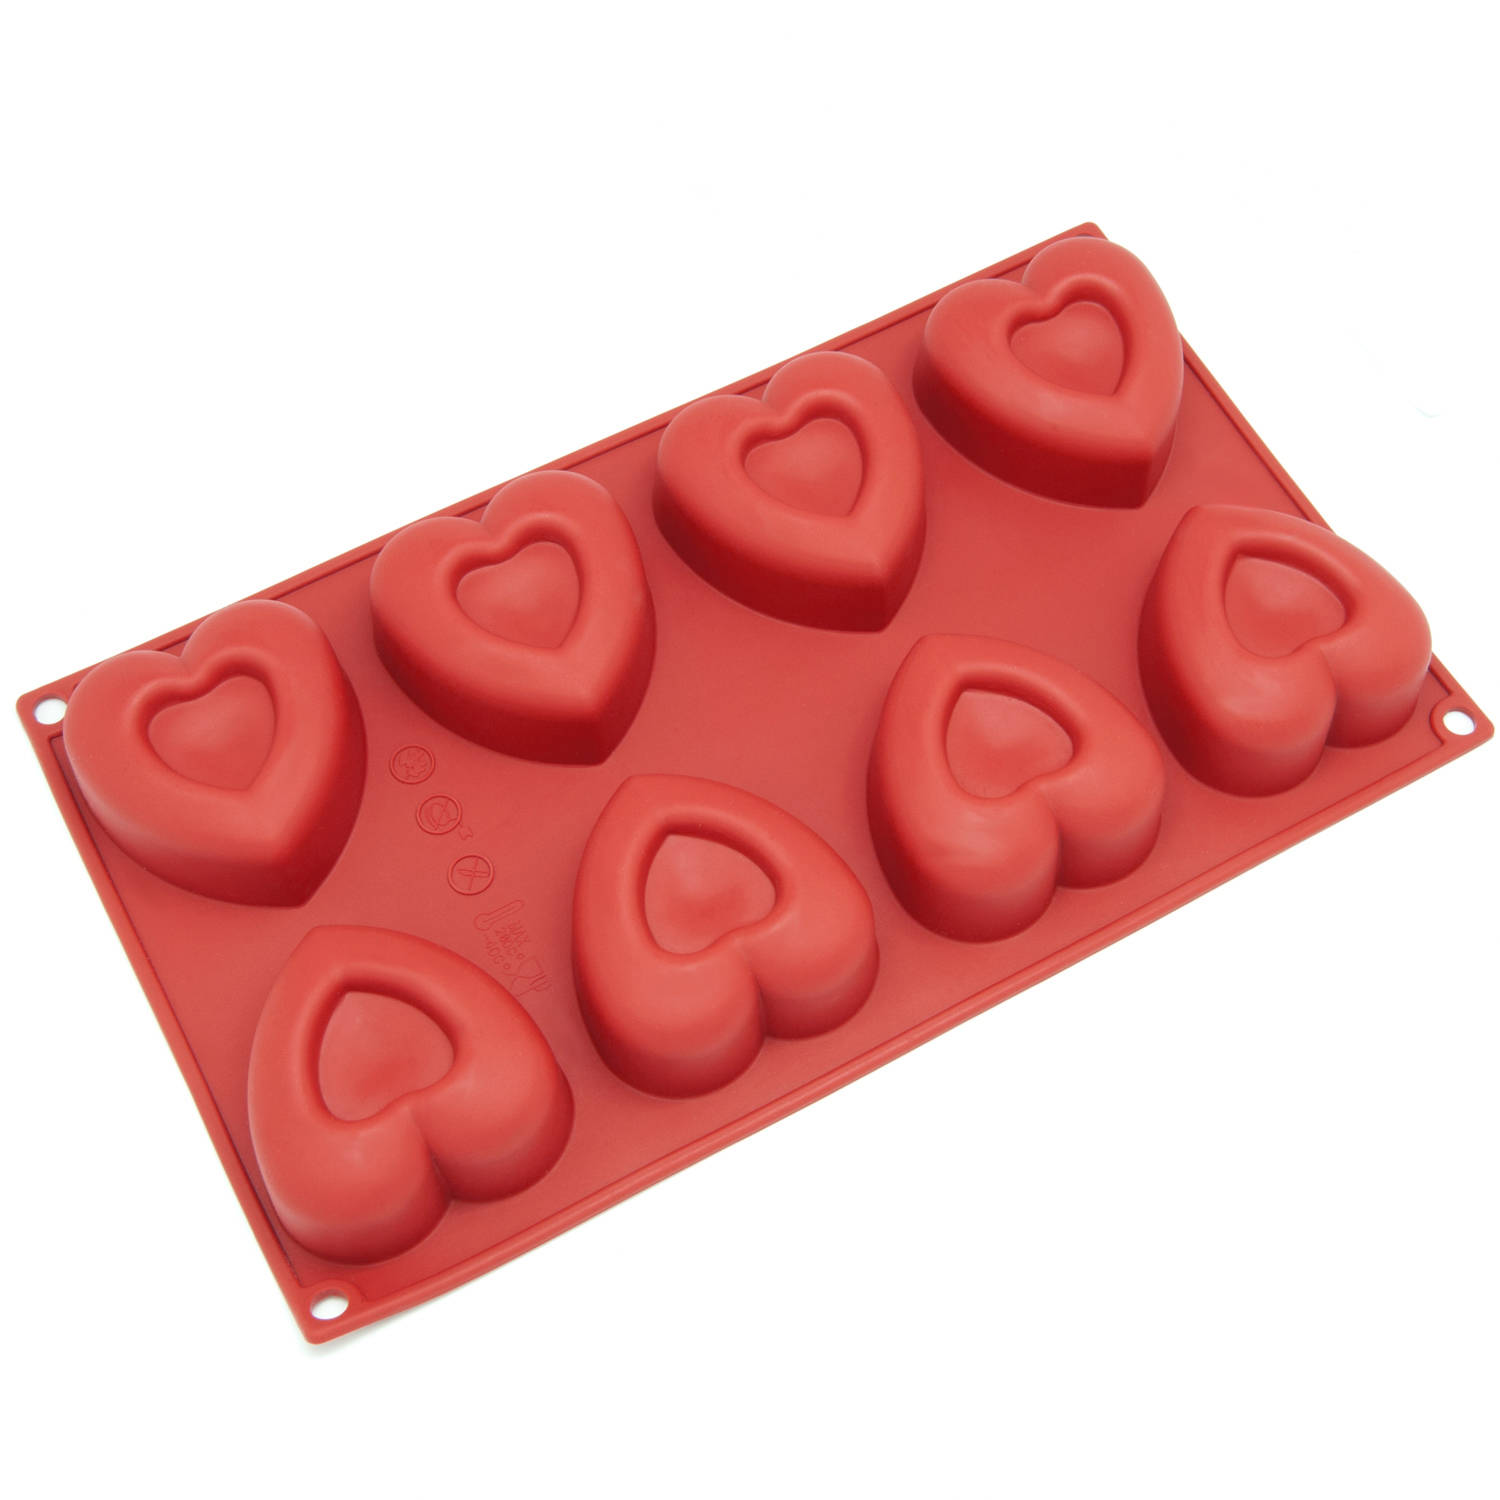 Freshware 8-Cavity Valentine Heart Silicone Mold for Muffin, Soap, Cupcake, Chocolate, Pudding and Jello, SL-110RD